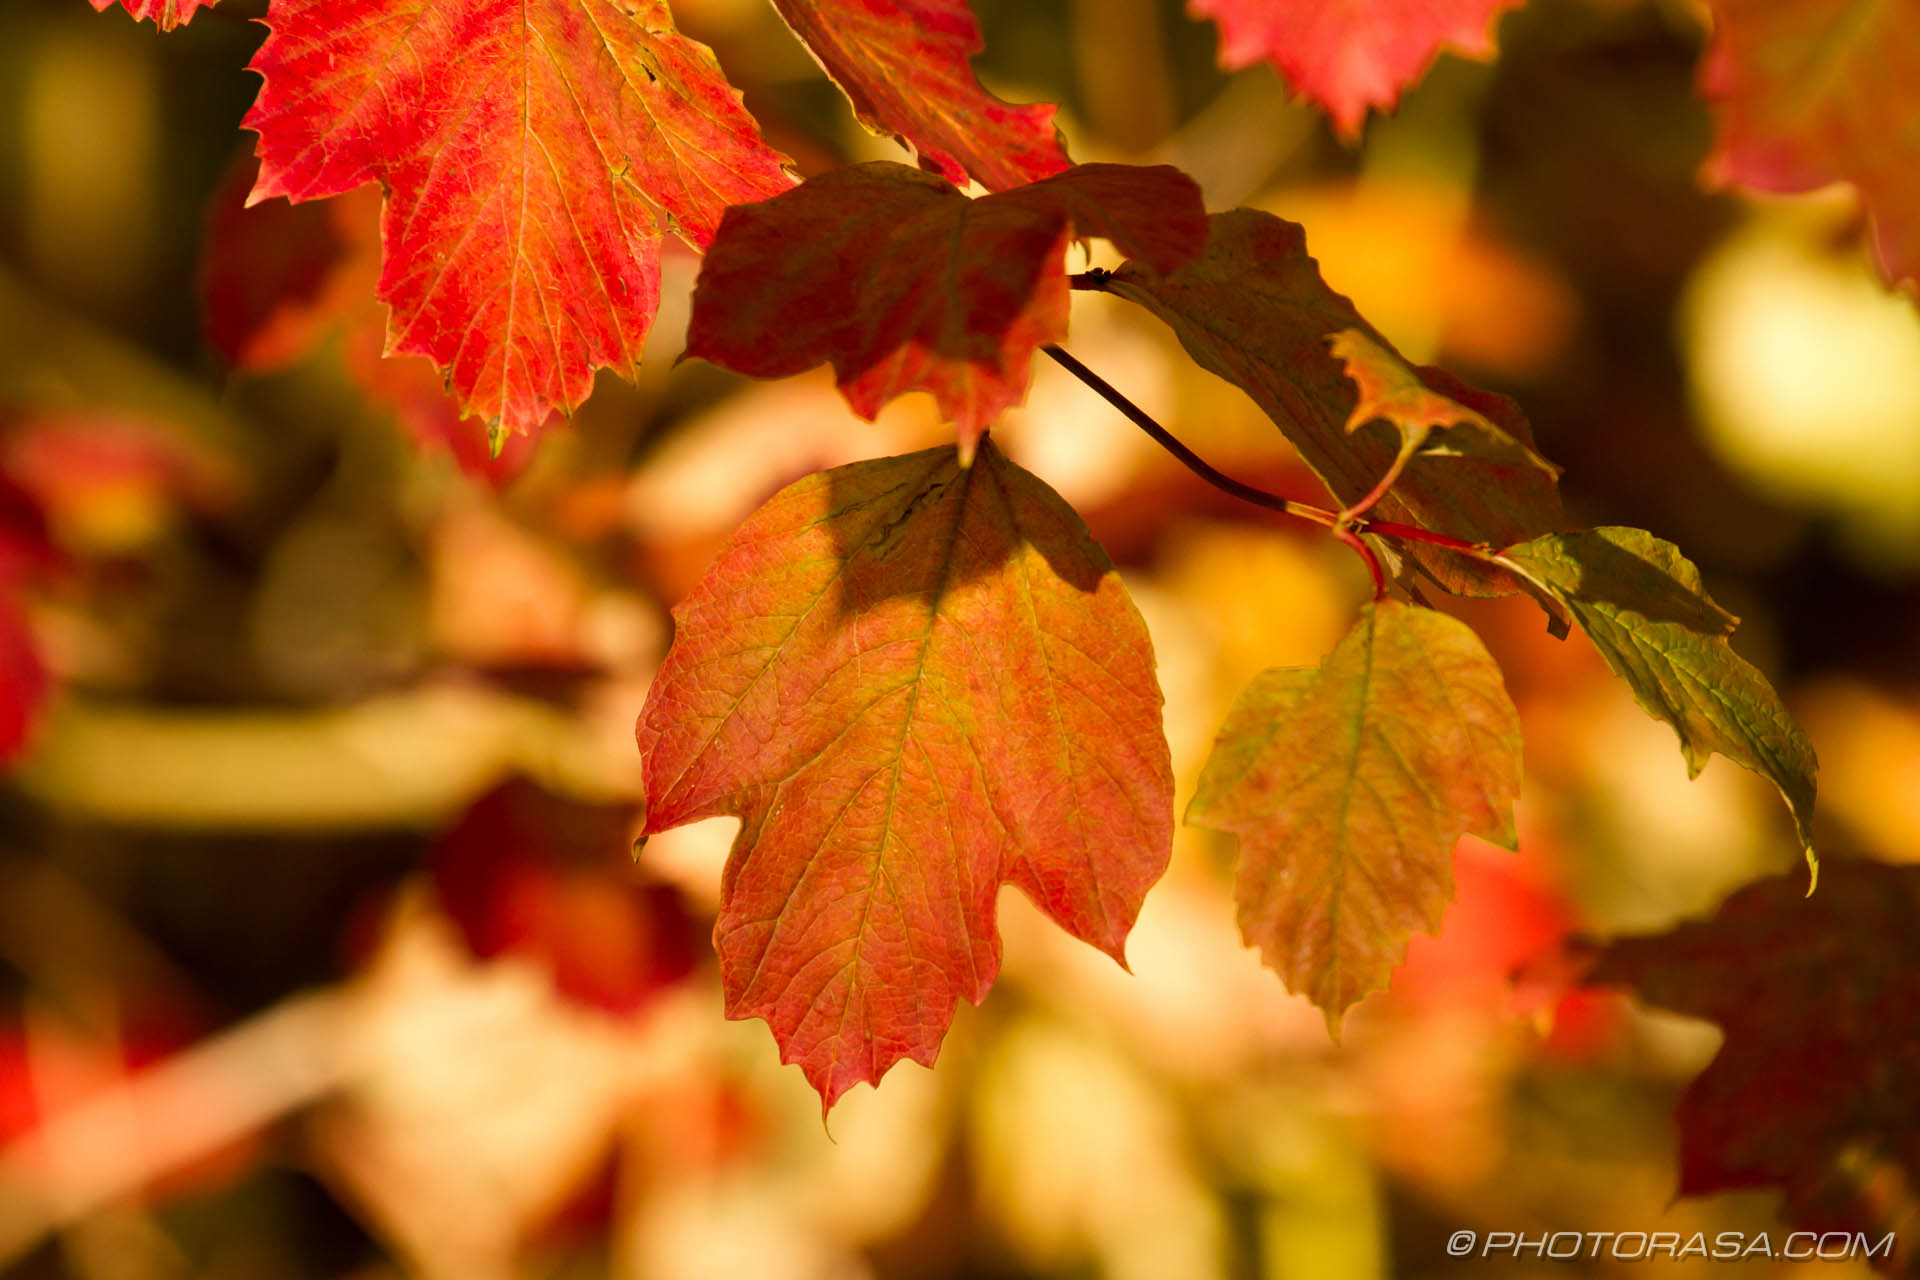 http://photorasa.com/autumn-leaves-sunlight/red-and-brown-sycamore-leaves/